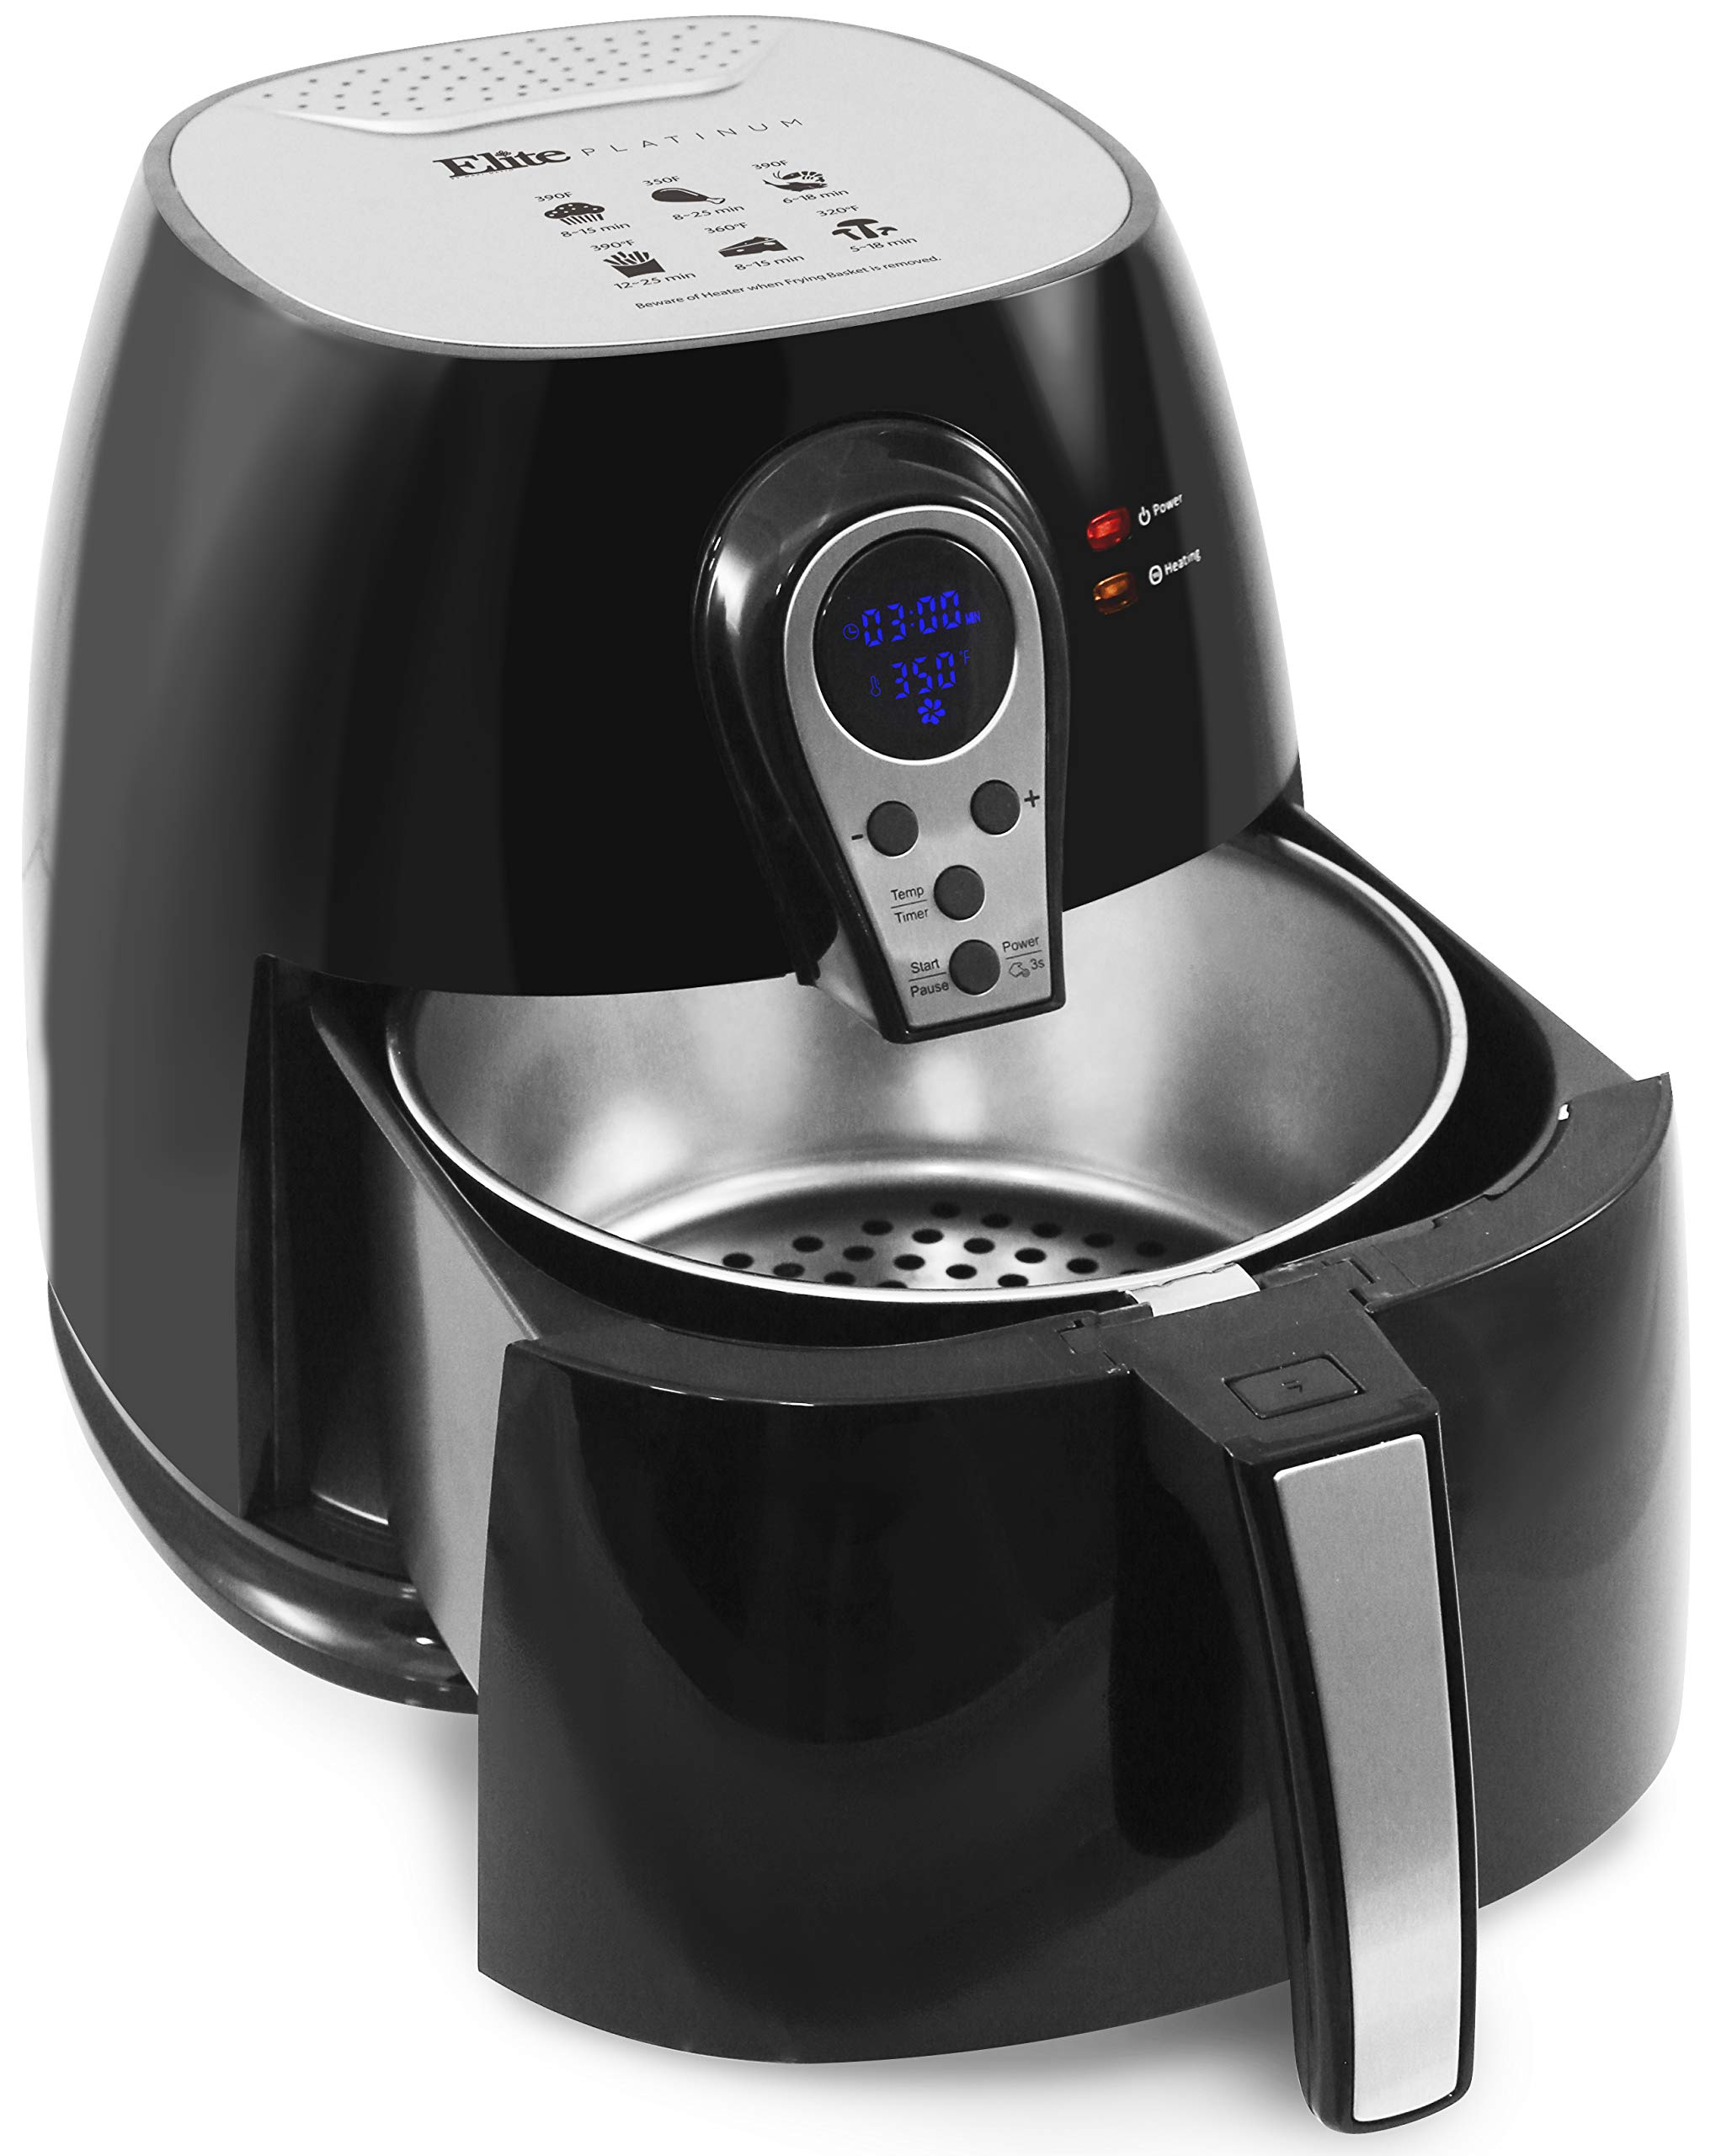 Maxi-Matic EAF-05SS Electric Digital Hot Air Fryer Oil-Less Healthy Cooker, Timer & Temperature Controls, 304 Stainless Steel Basket PFOA/PTFE Free, 1400-Watts, Black 3.2 Quart